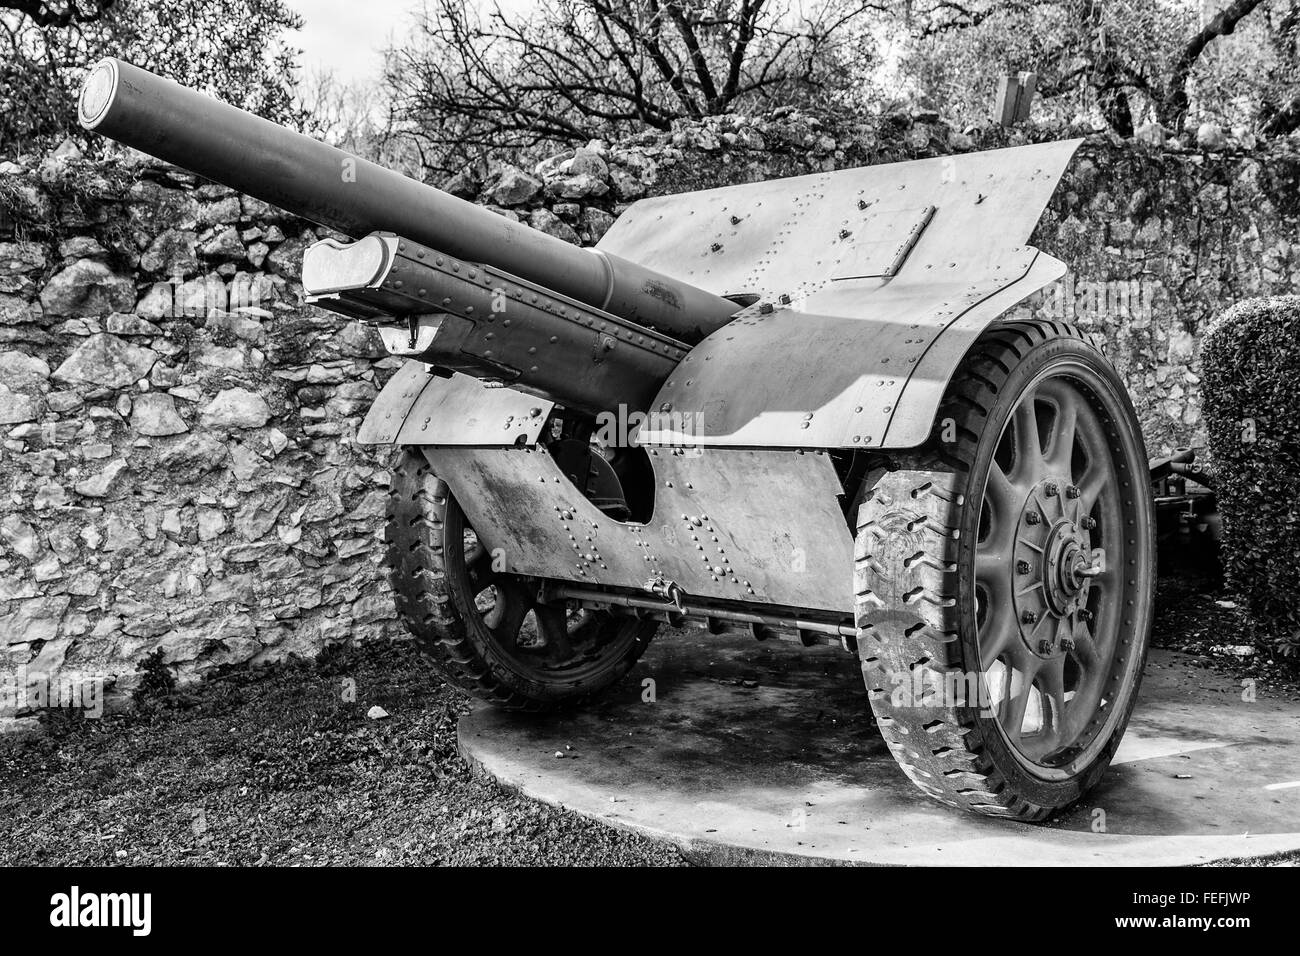 Cannon on wheels used by Italian soldiers during the World War I. - Stock Image